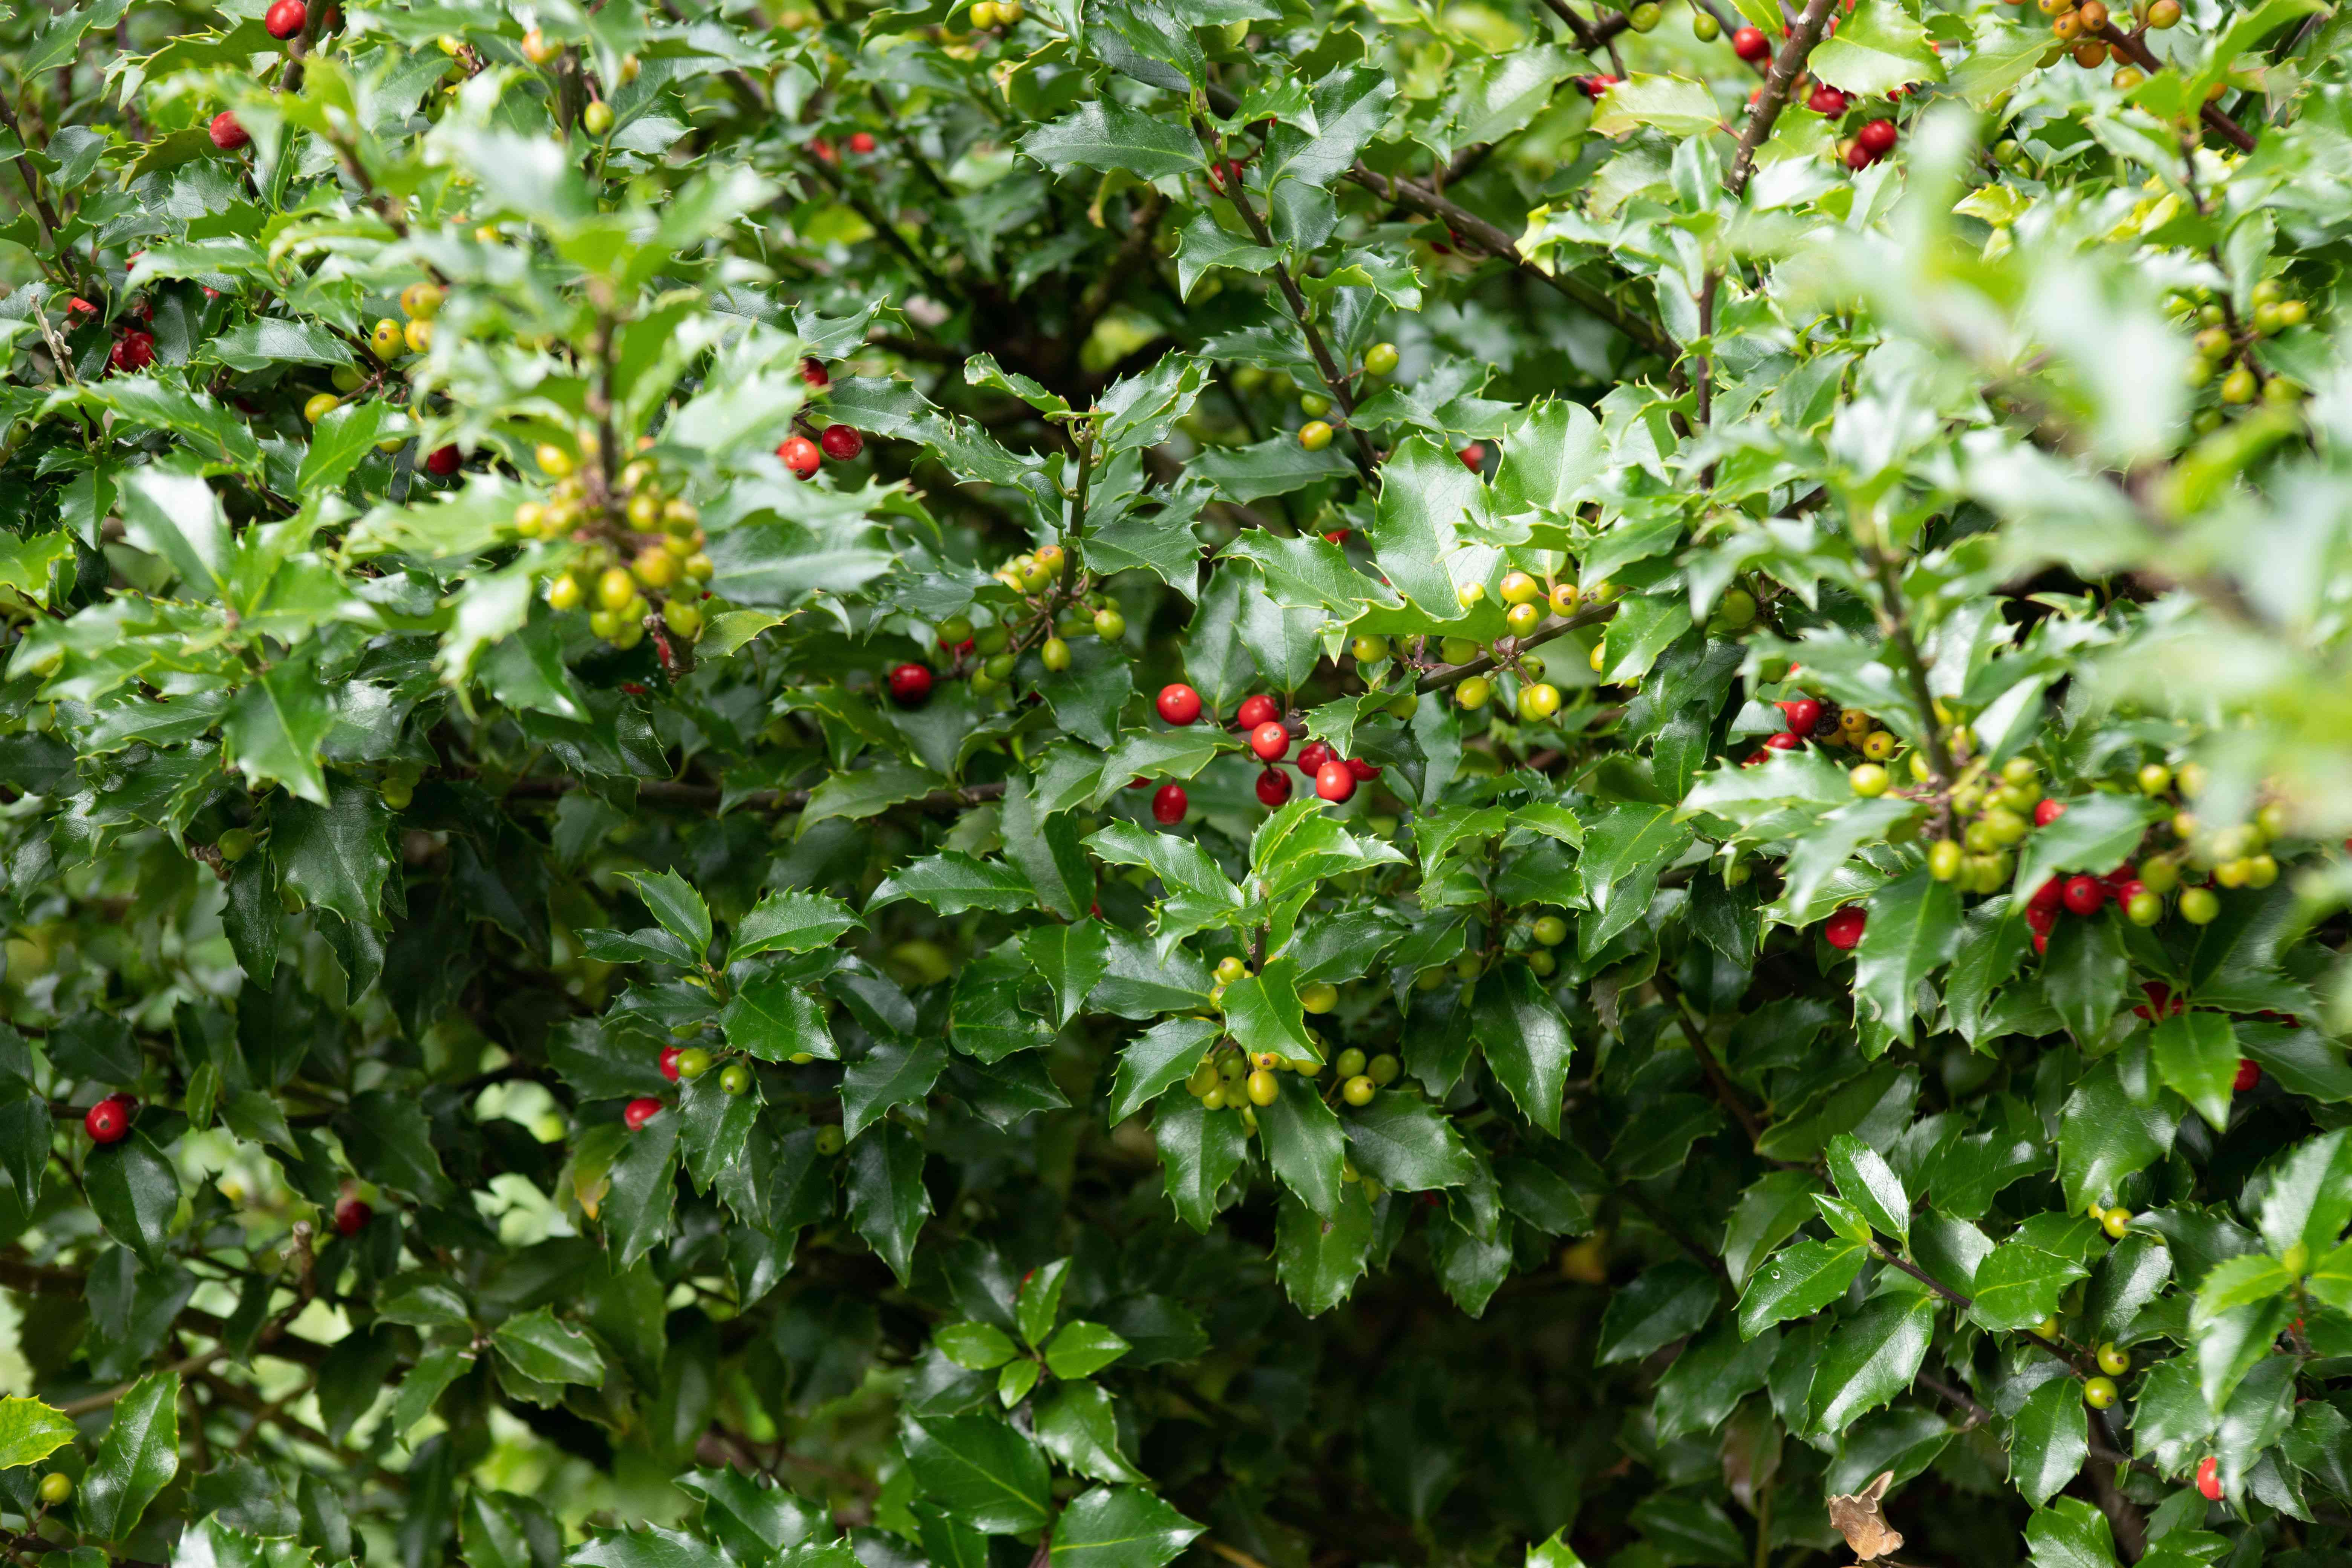 English holly bush with red and light green berries hanging on branches with waxy green leaves